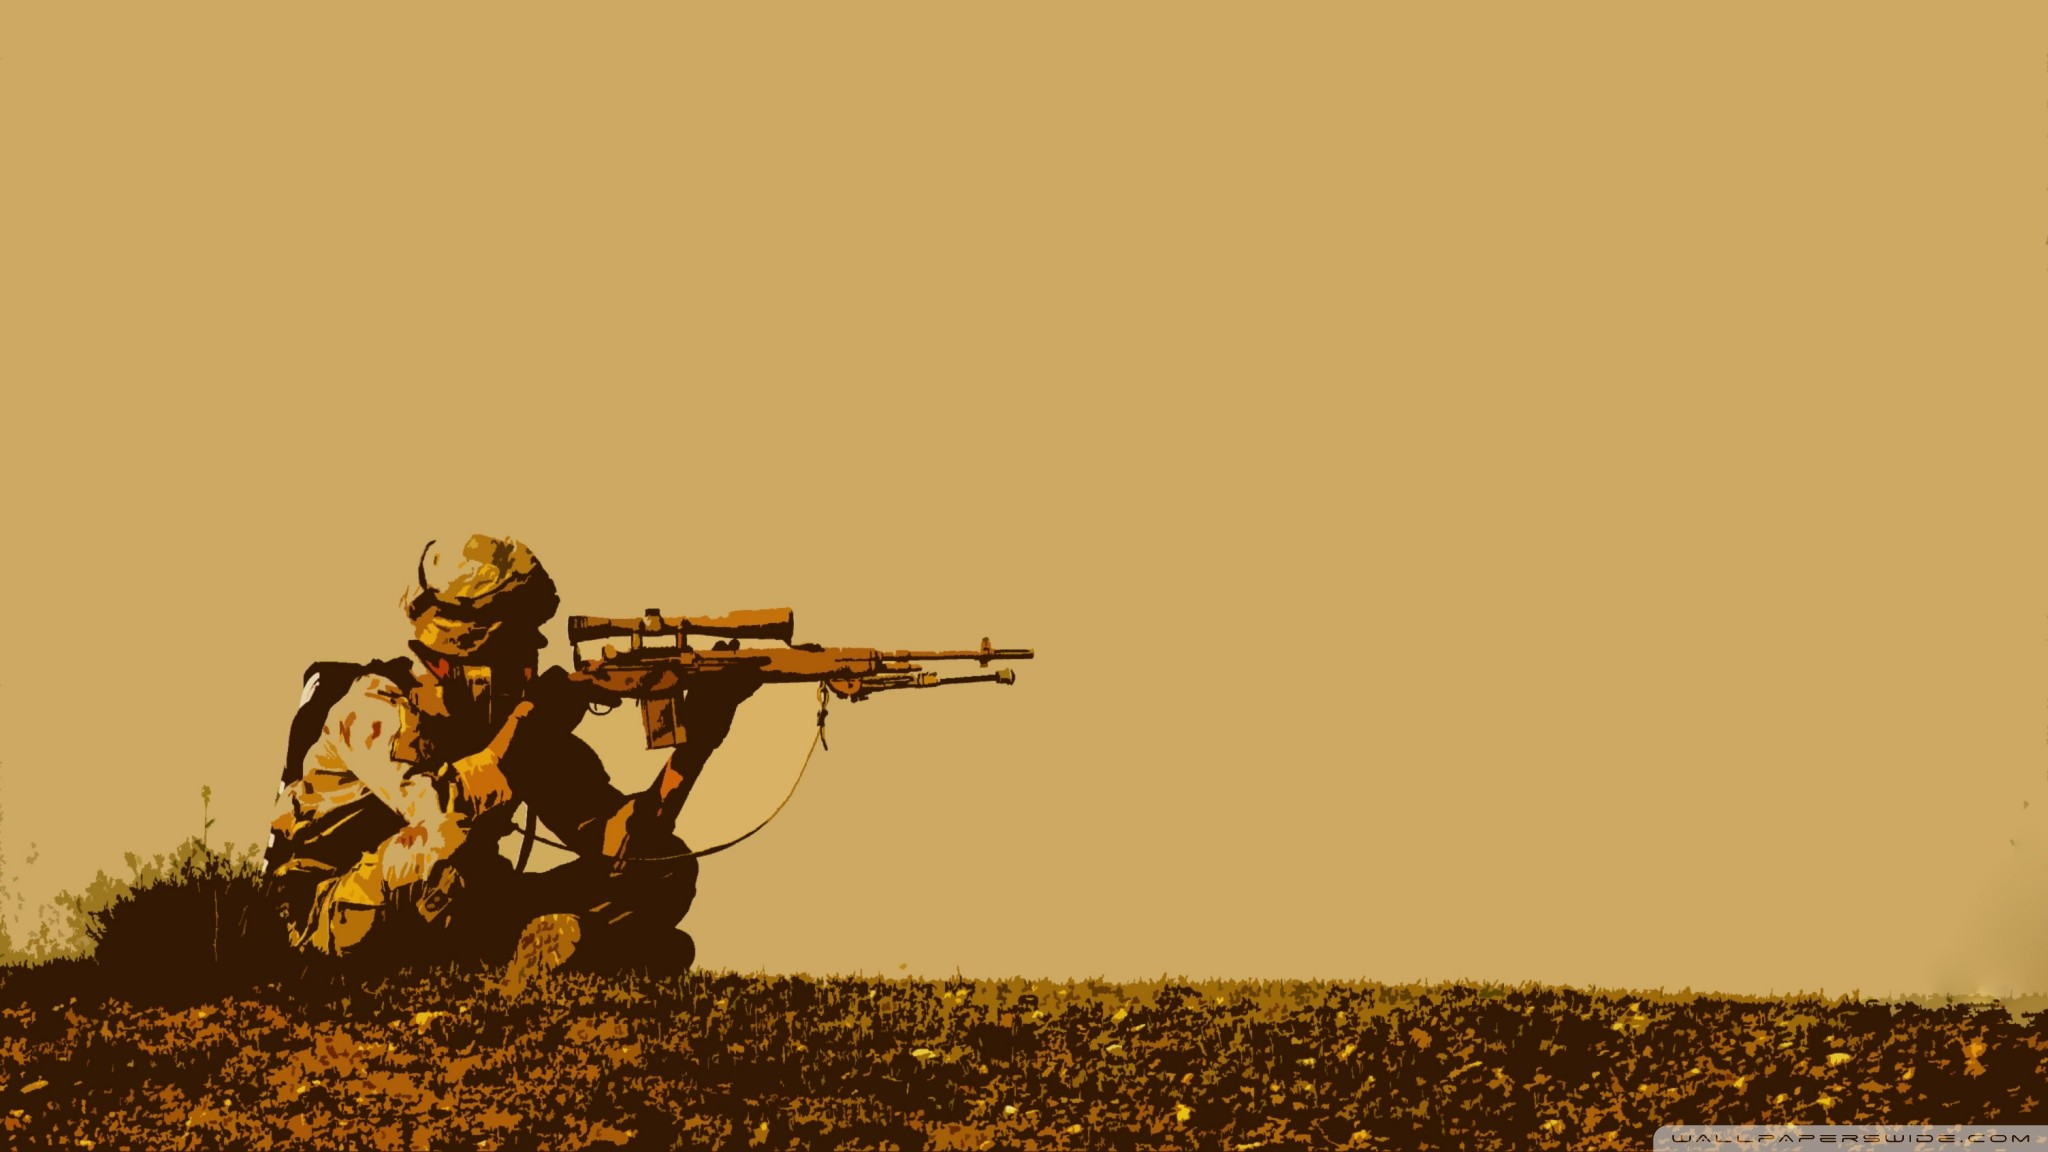 Military Wallpapers Android Apps on Google Play 2048×1152 Military Pictures  Wallpapers (44 Wallpapers